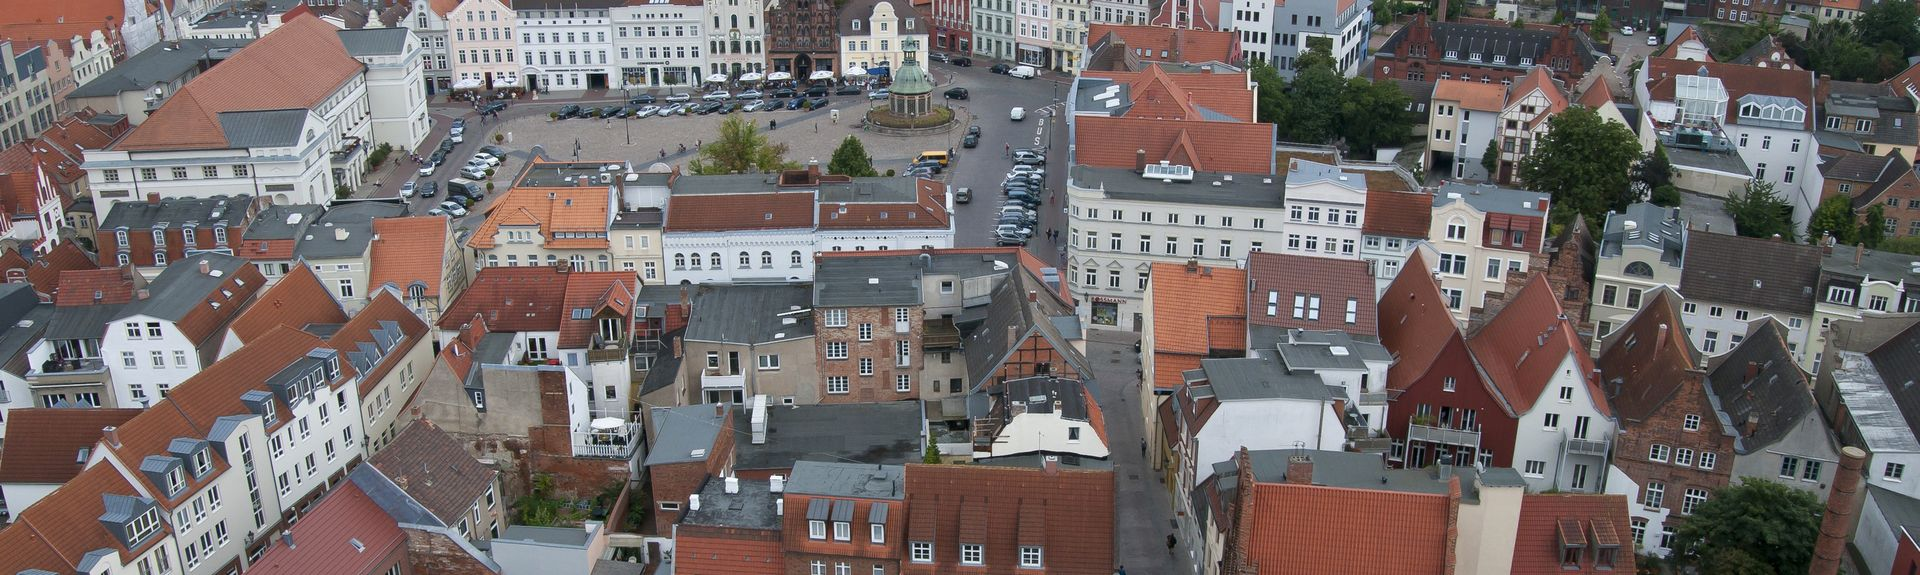 Wismar, Mecklenburg-West Pomerania, Germany